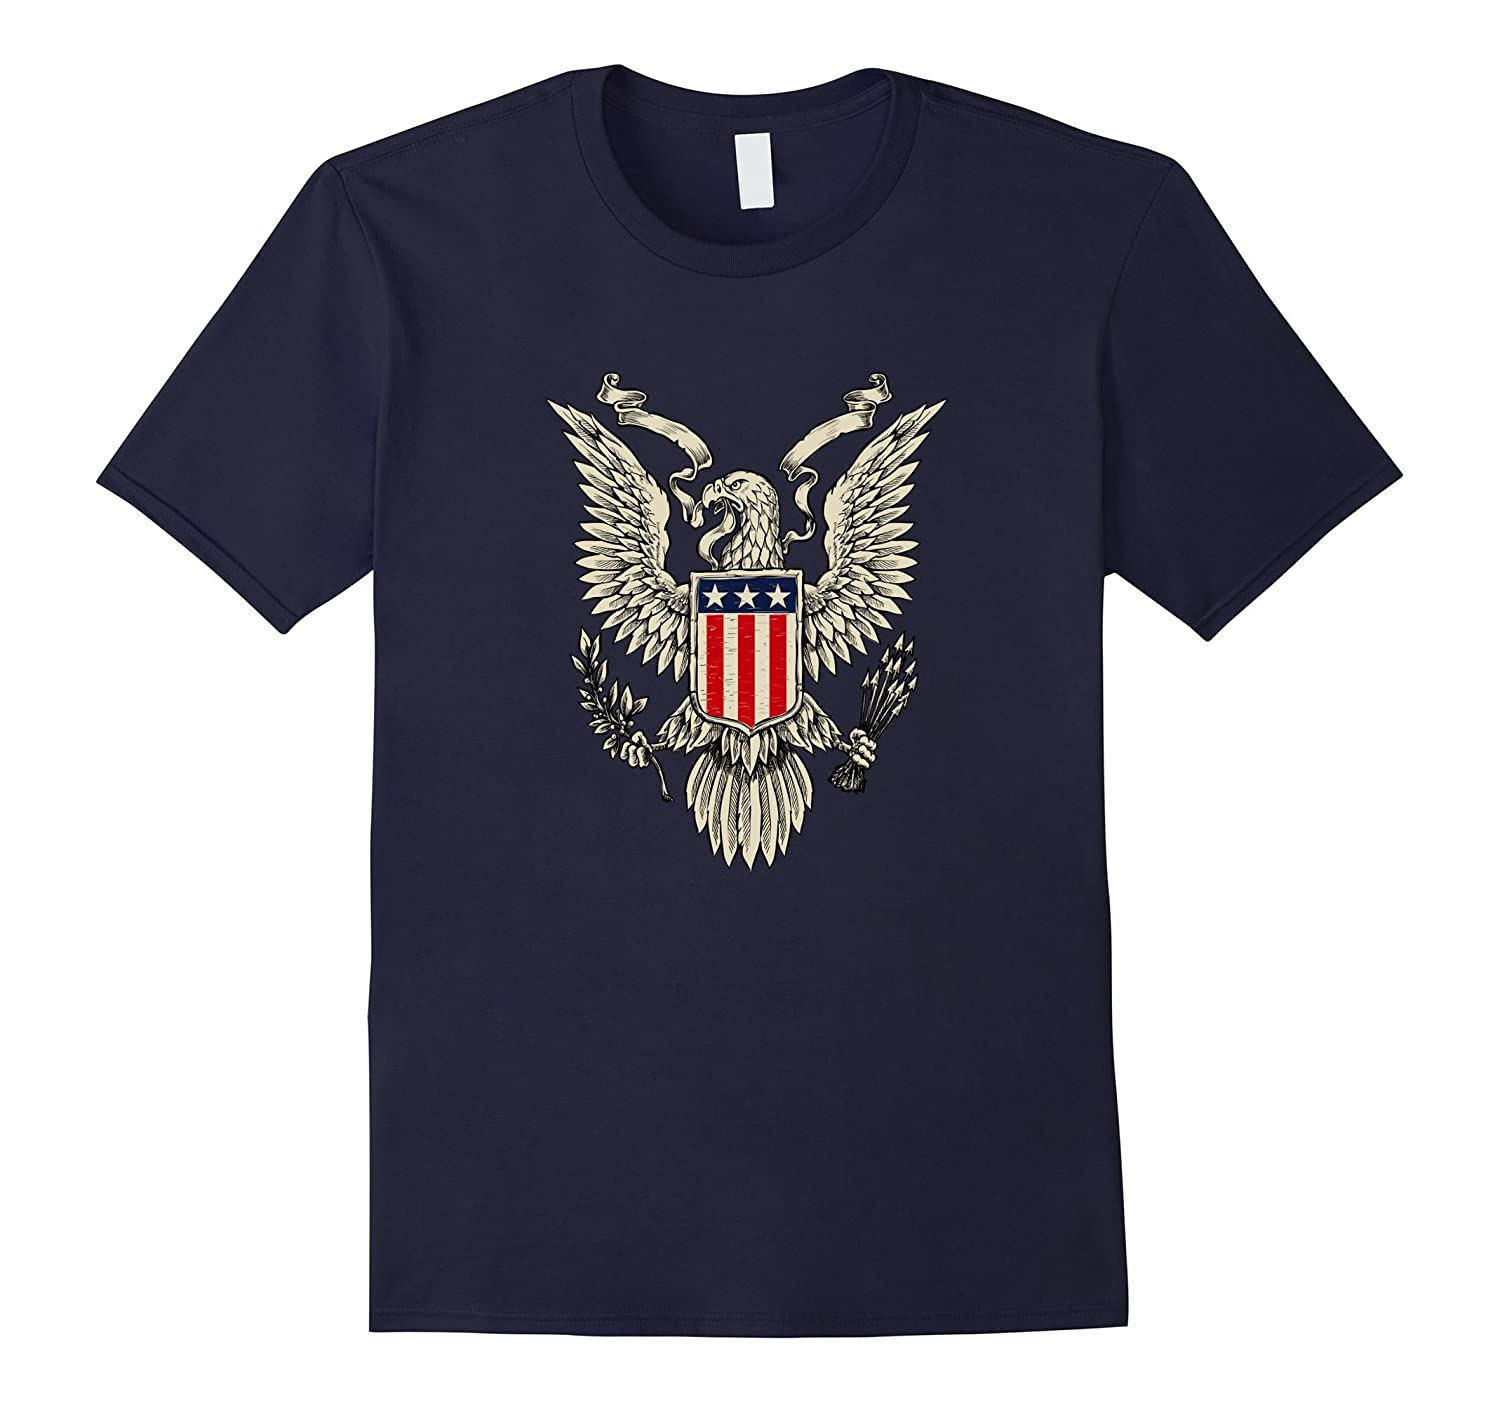 American Patriotic T Shirt With Eagle For National Holidays-Vaci